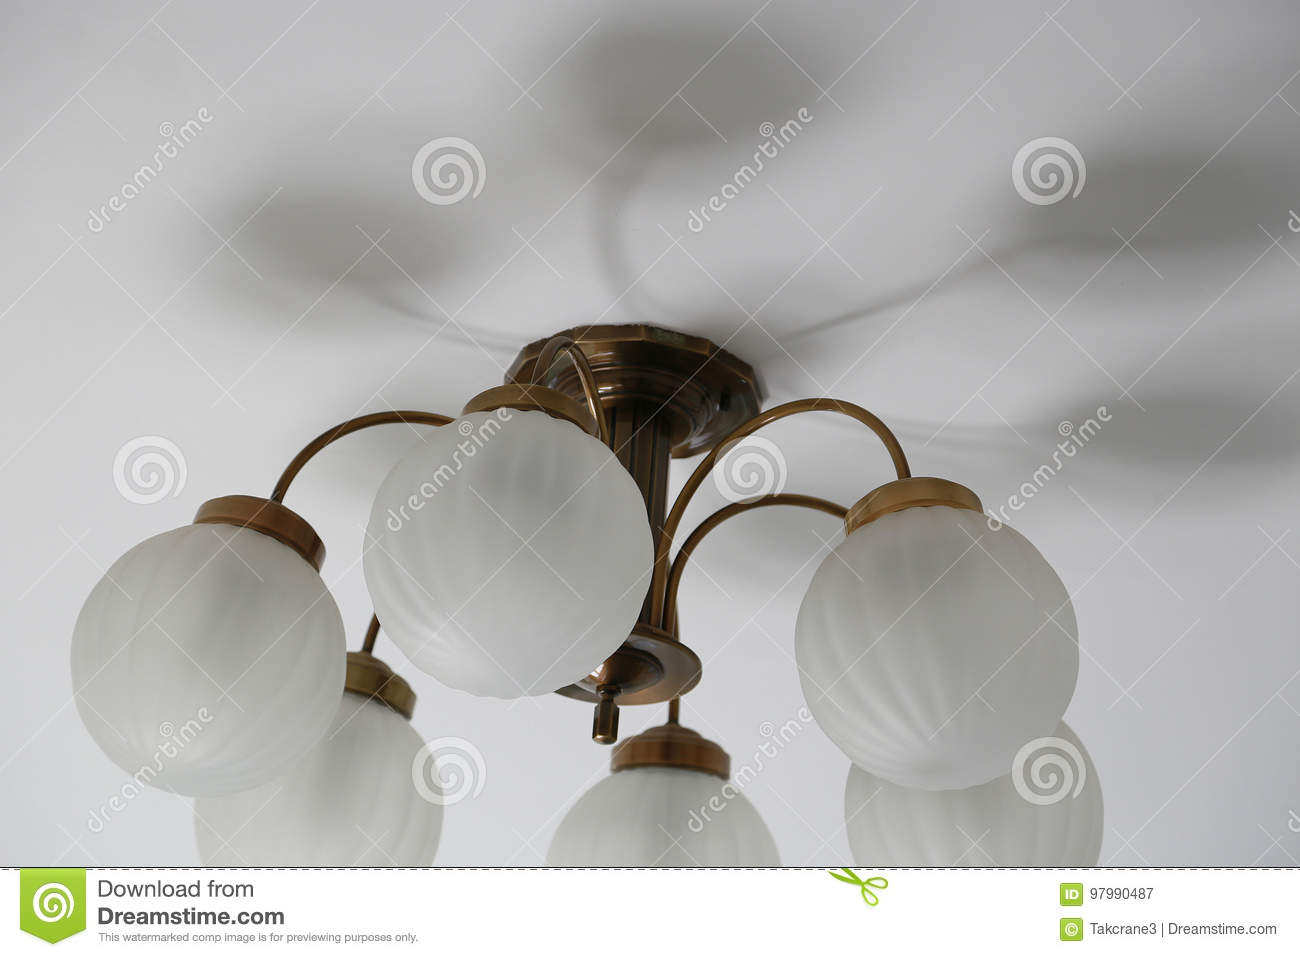 Room lighting fixtures on the ceiling